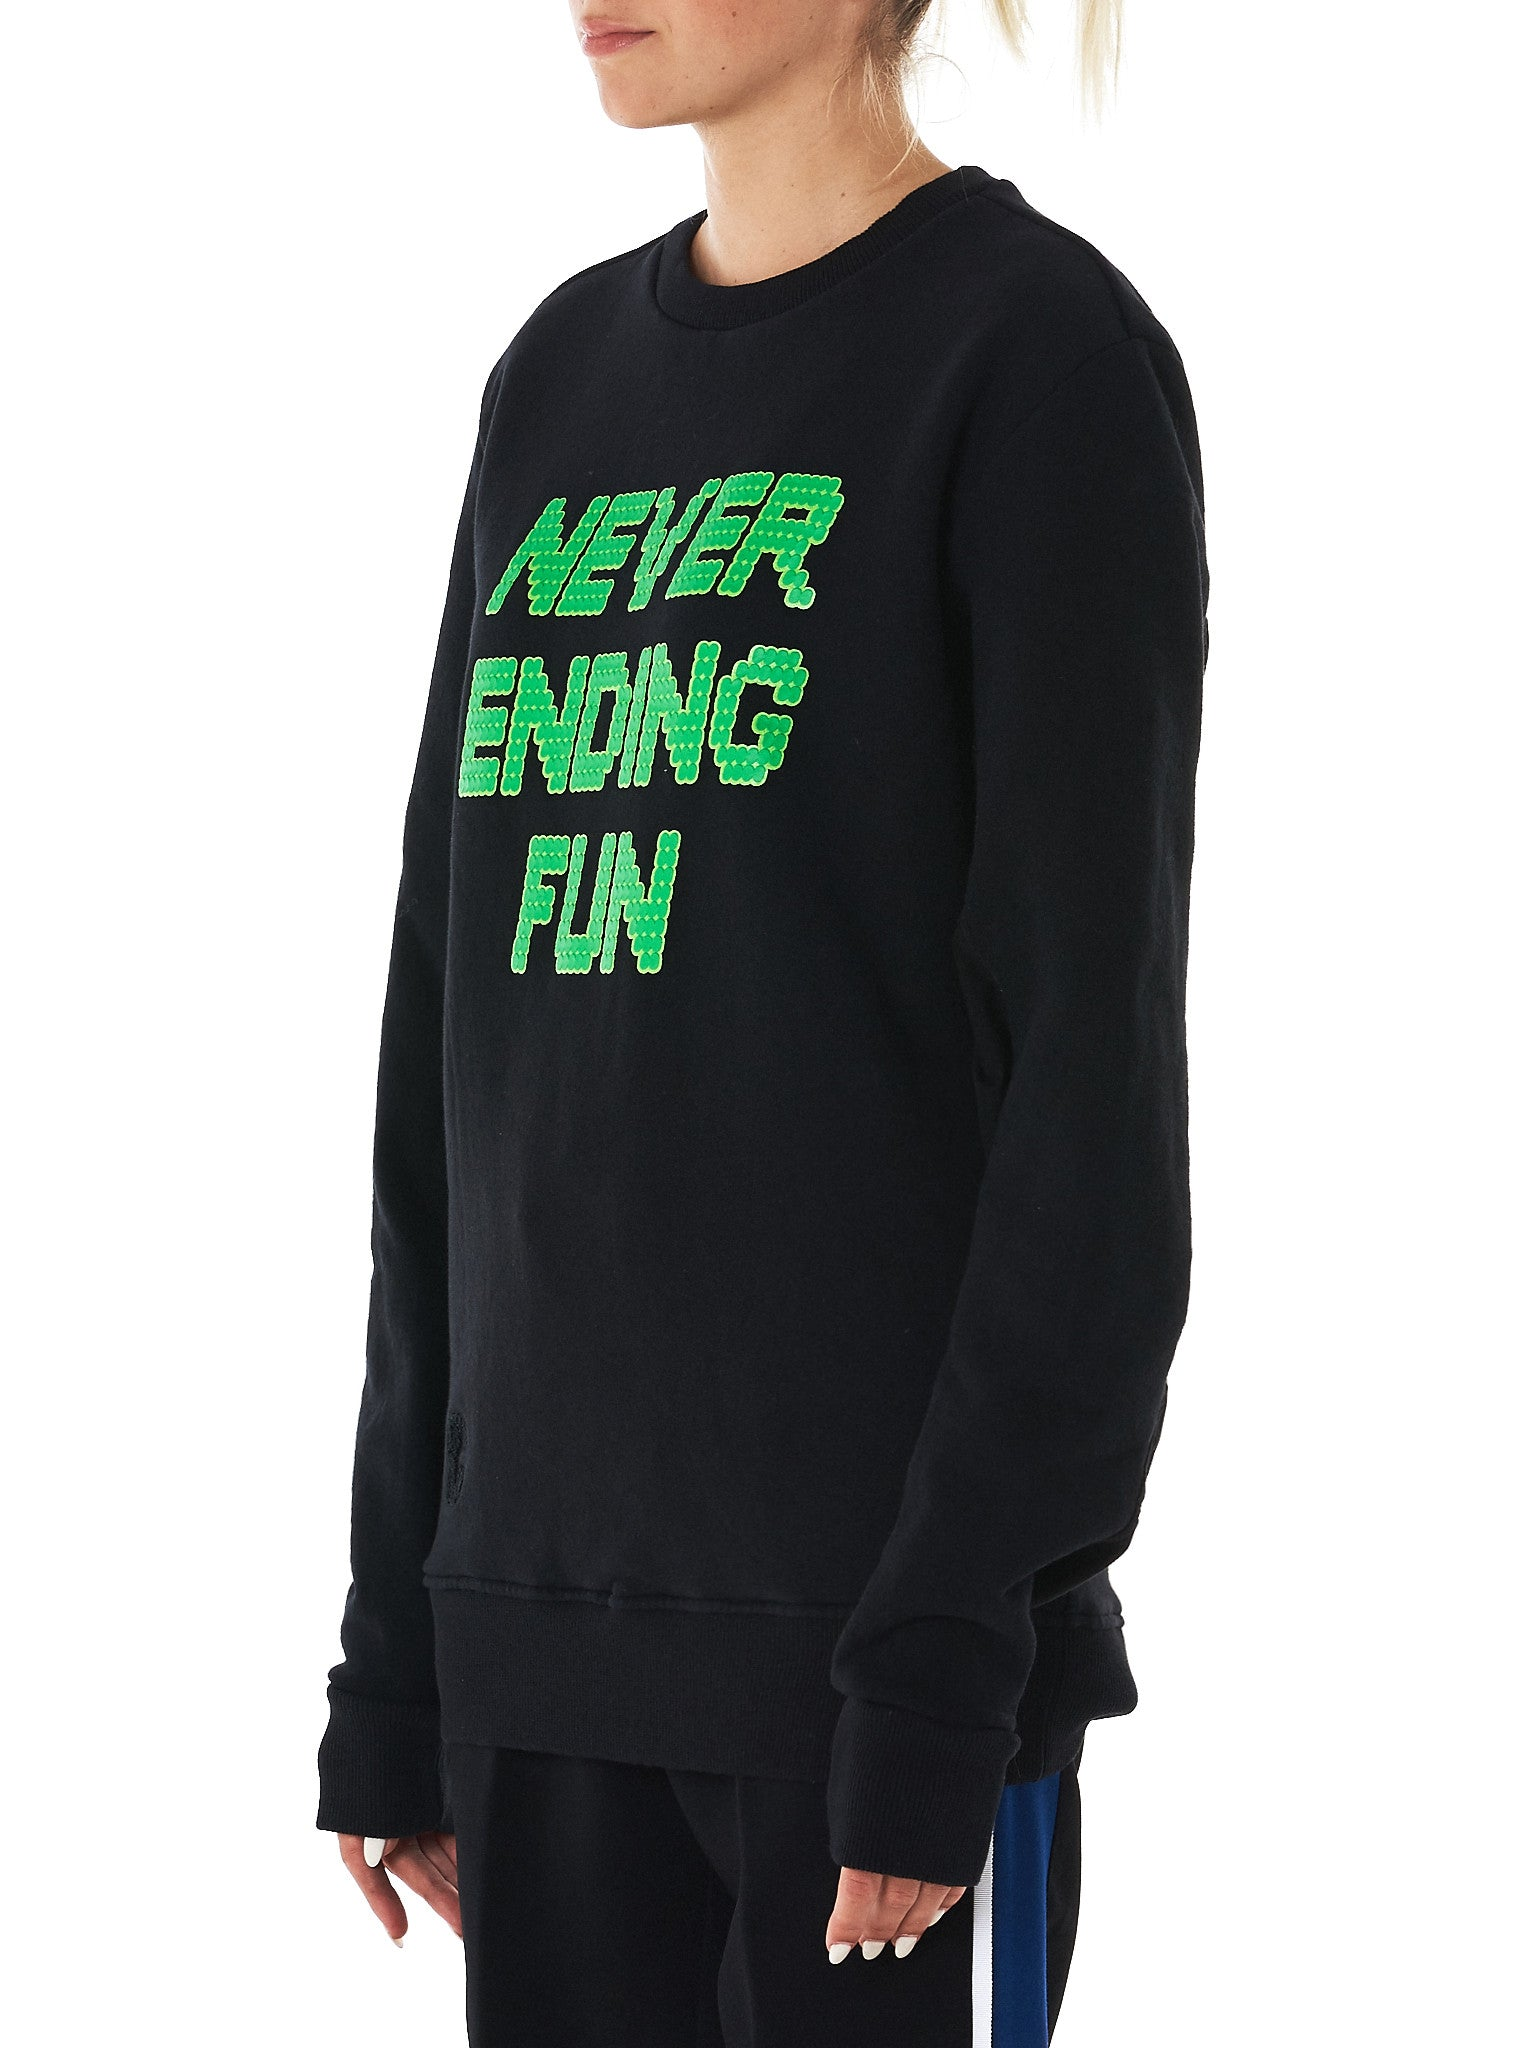 Tim Coppens-HLorenzo-sweater side view